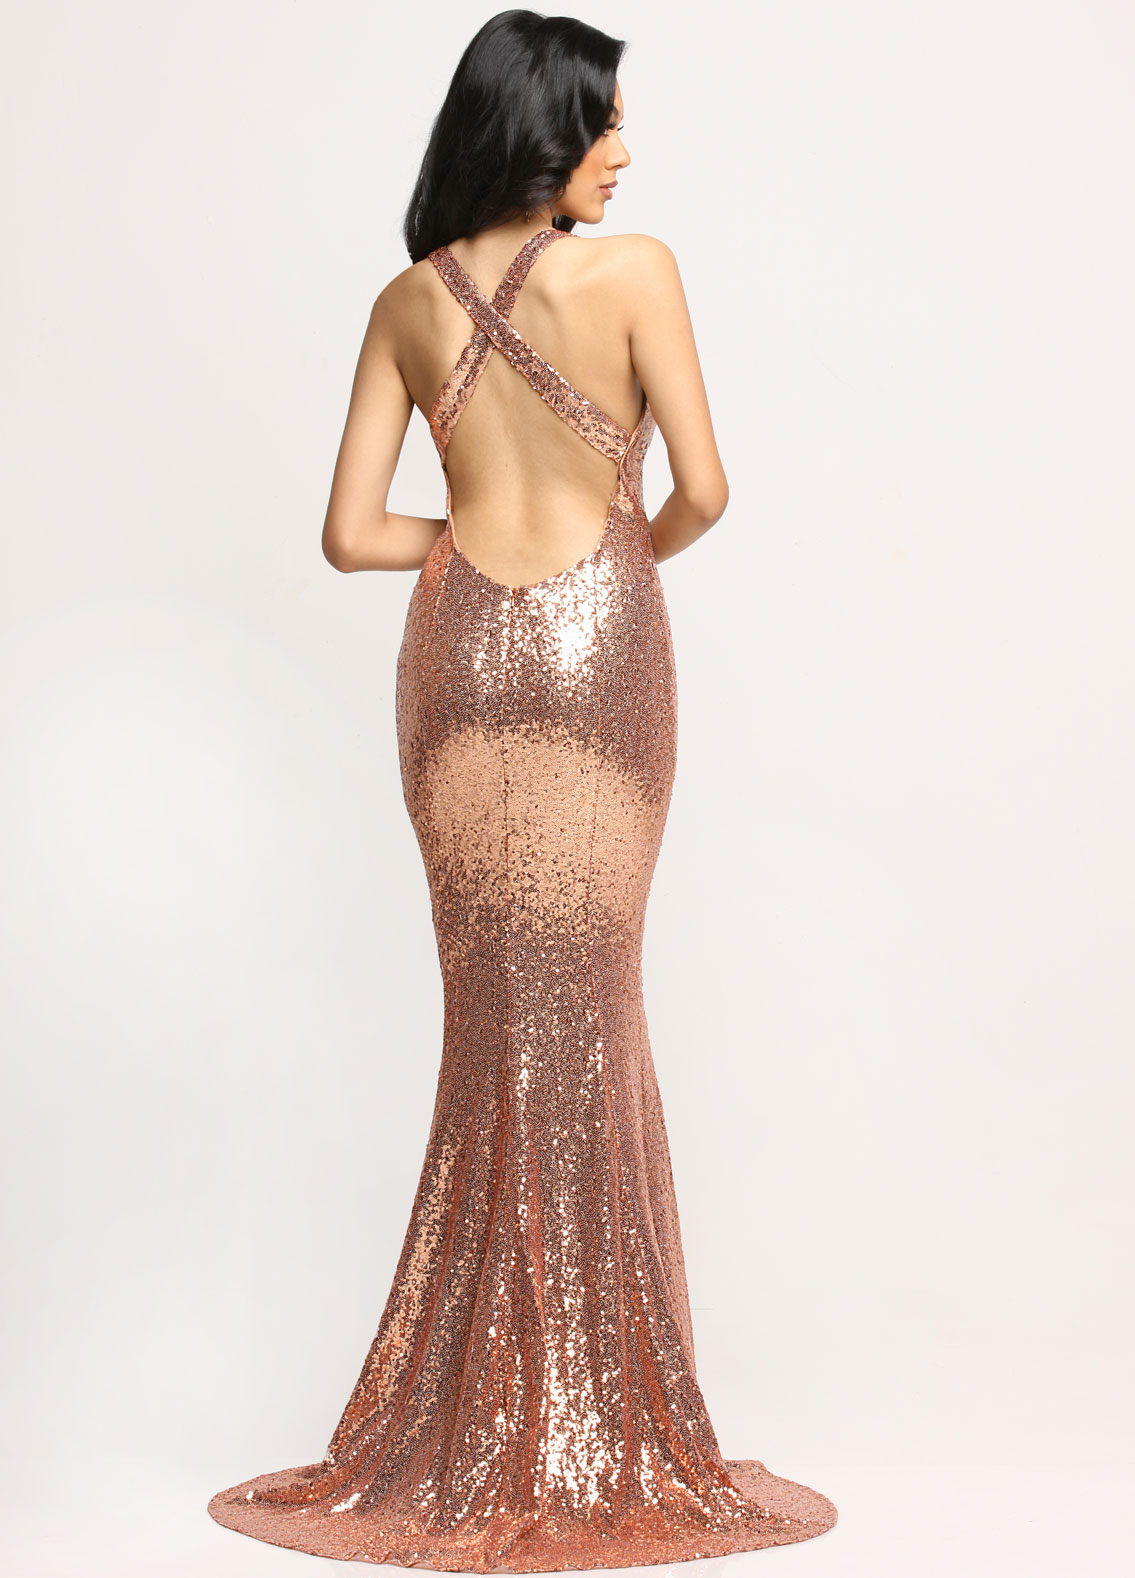 Image showing back view of style #71667